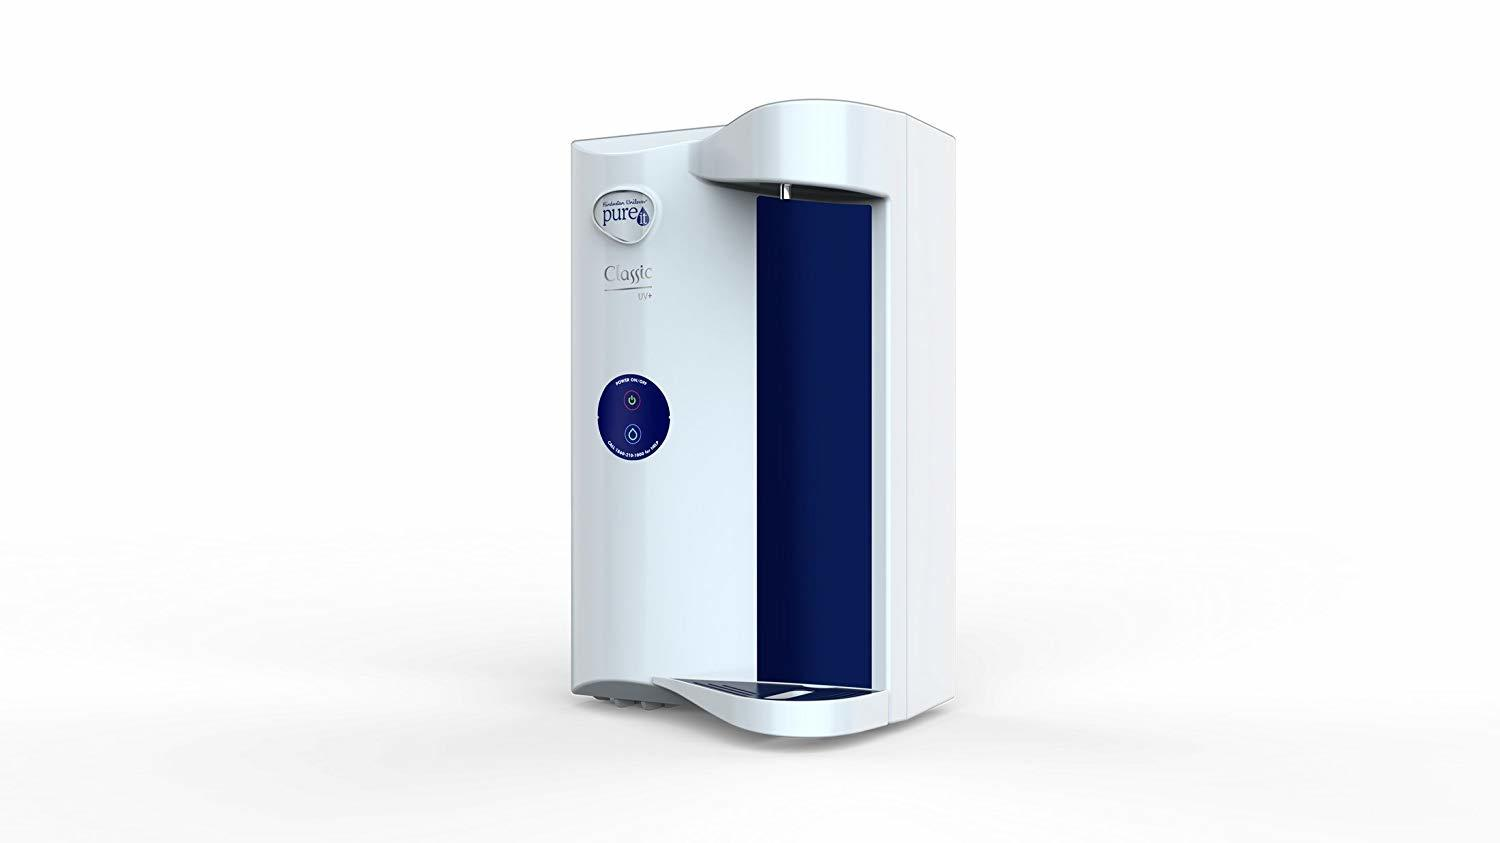 HUL Pureit Classic G2 UV+ 4 Stage Table Top/Wall Mountable White & Blue Tankless Water Purifier